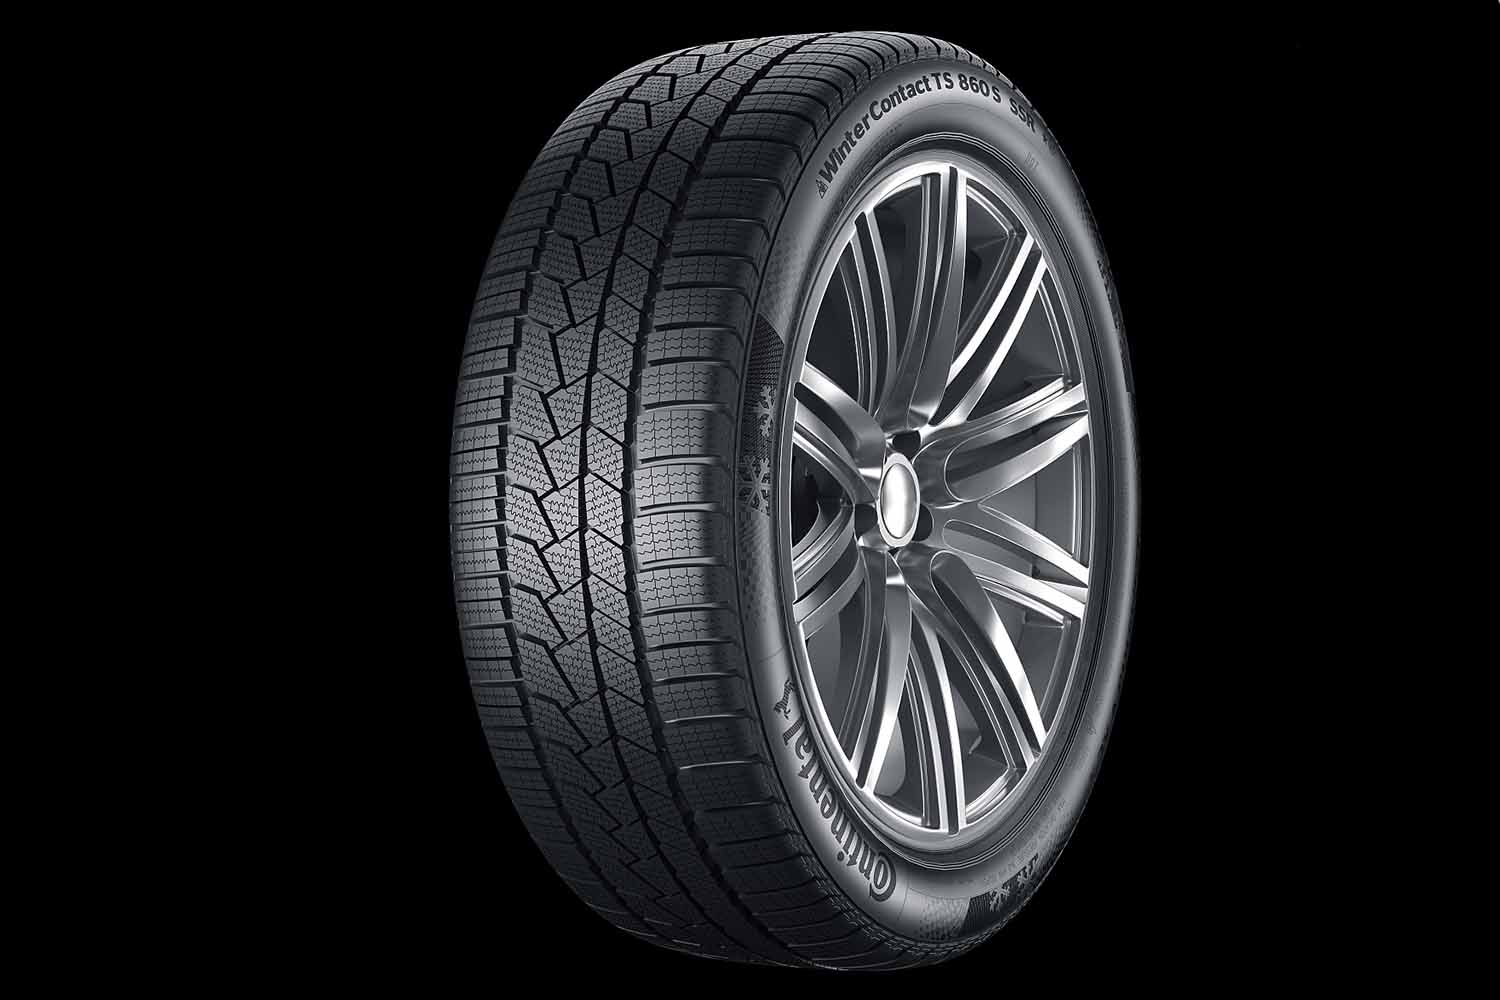 Gomme Nuove Continental 245/40 R19 98V TS860 S XL M+S pneumatici nuovi Invernale